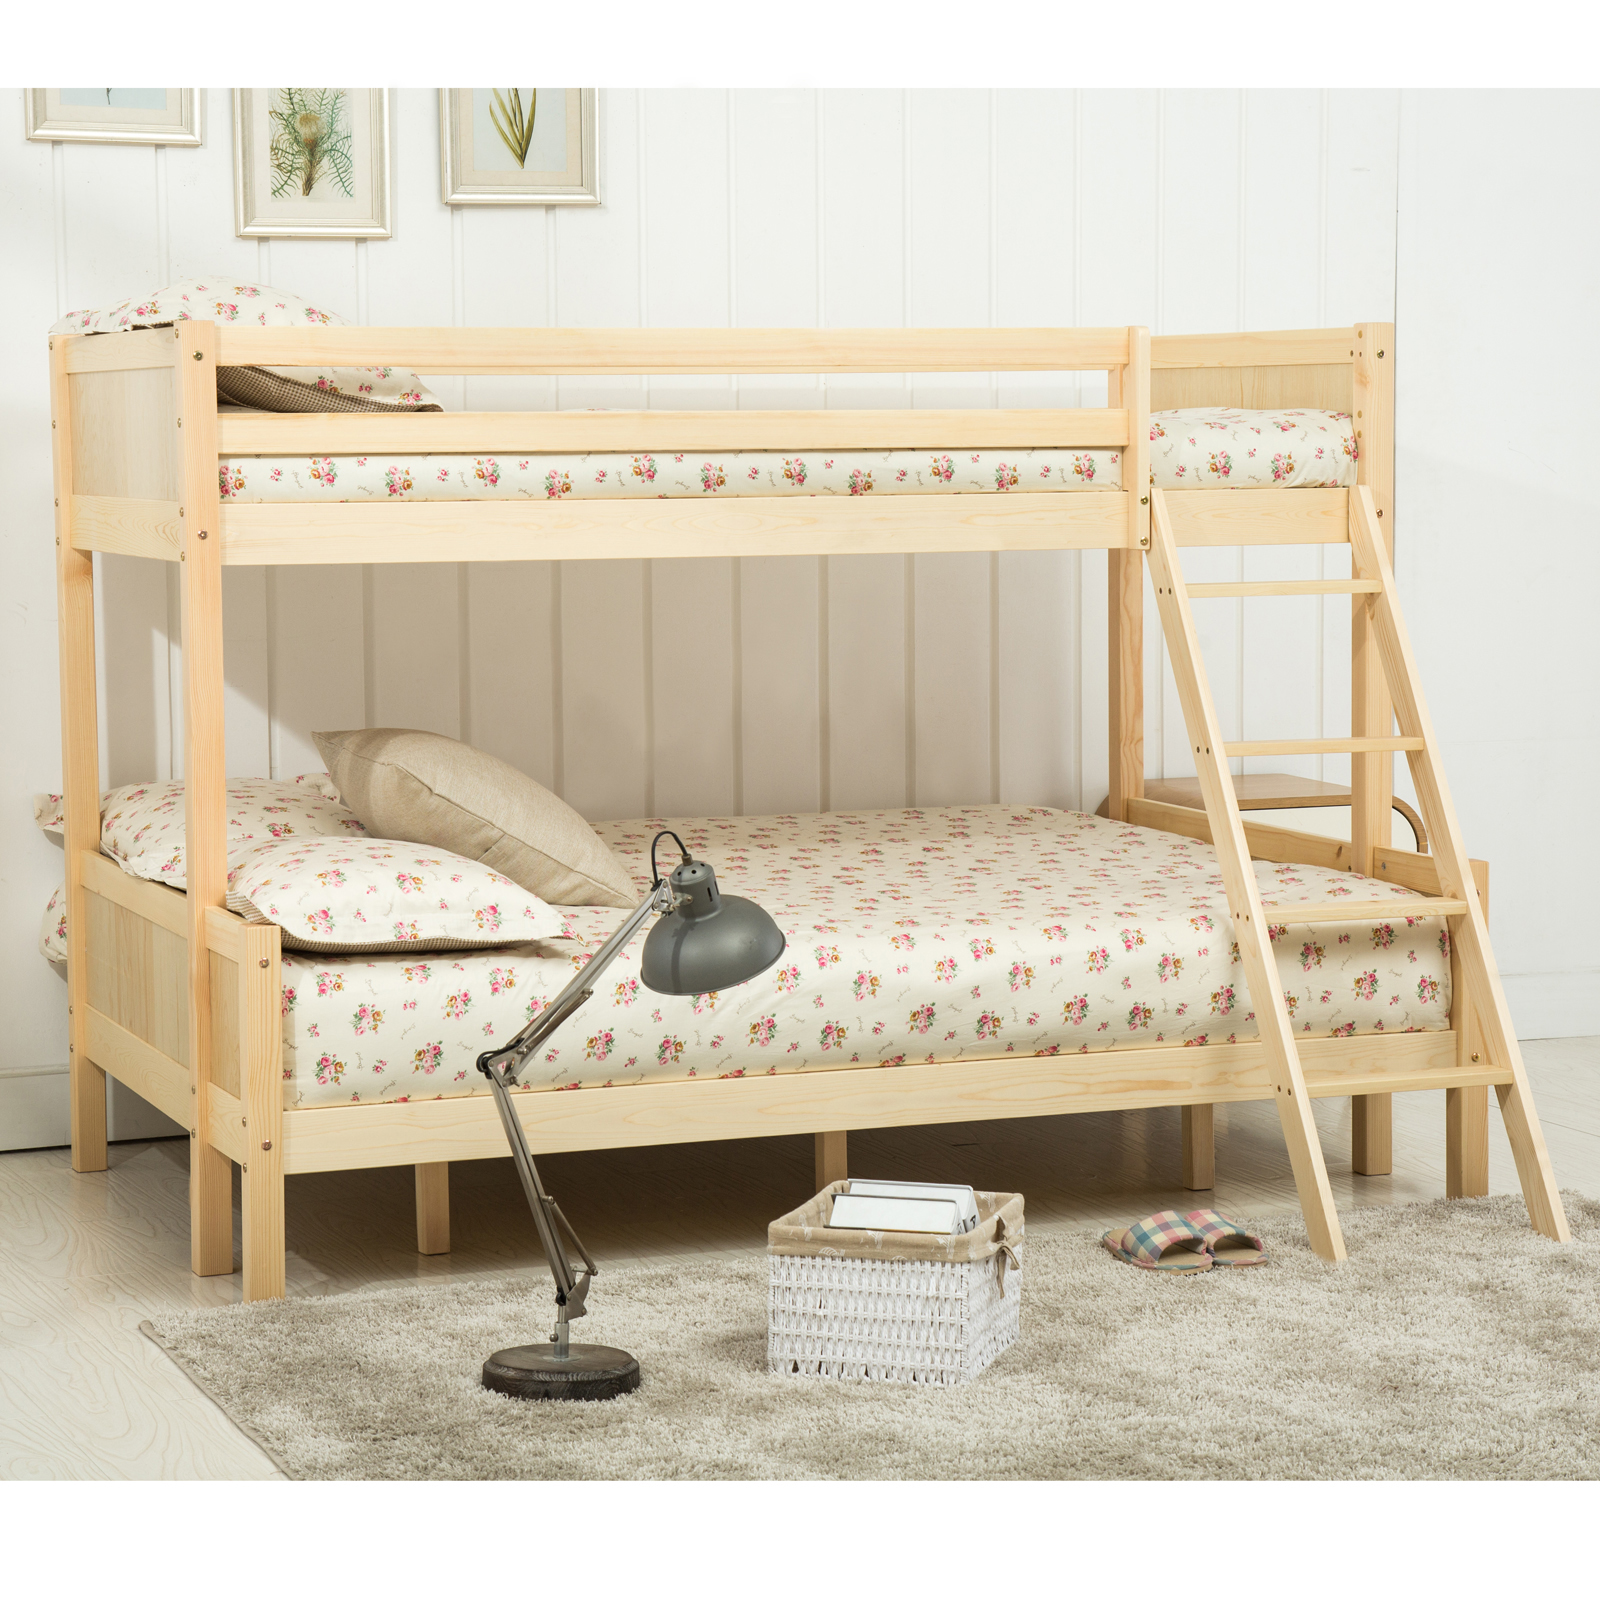 Triple Pine Wood Bunk Bed In White Natural For Bedroom Wooden Beds